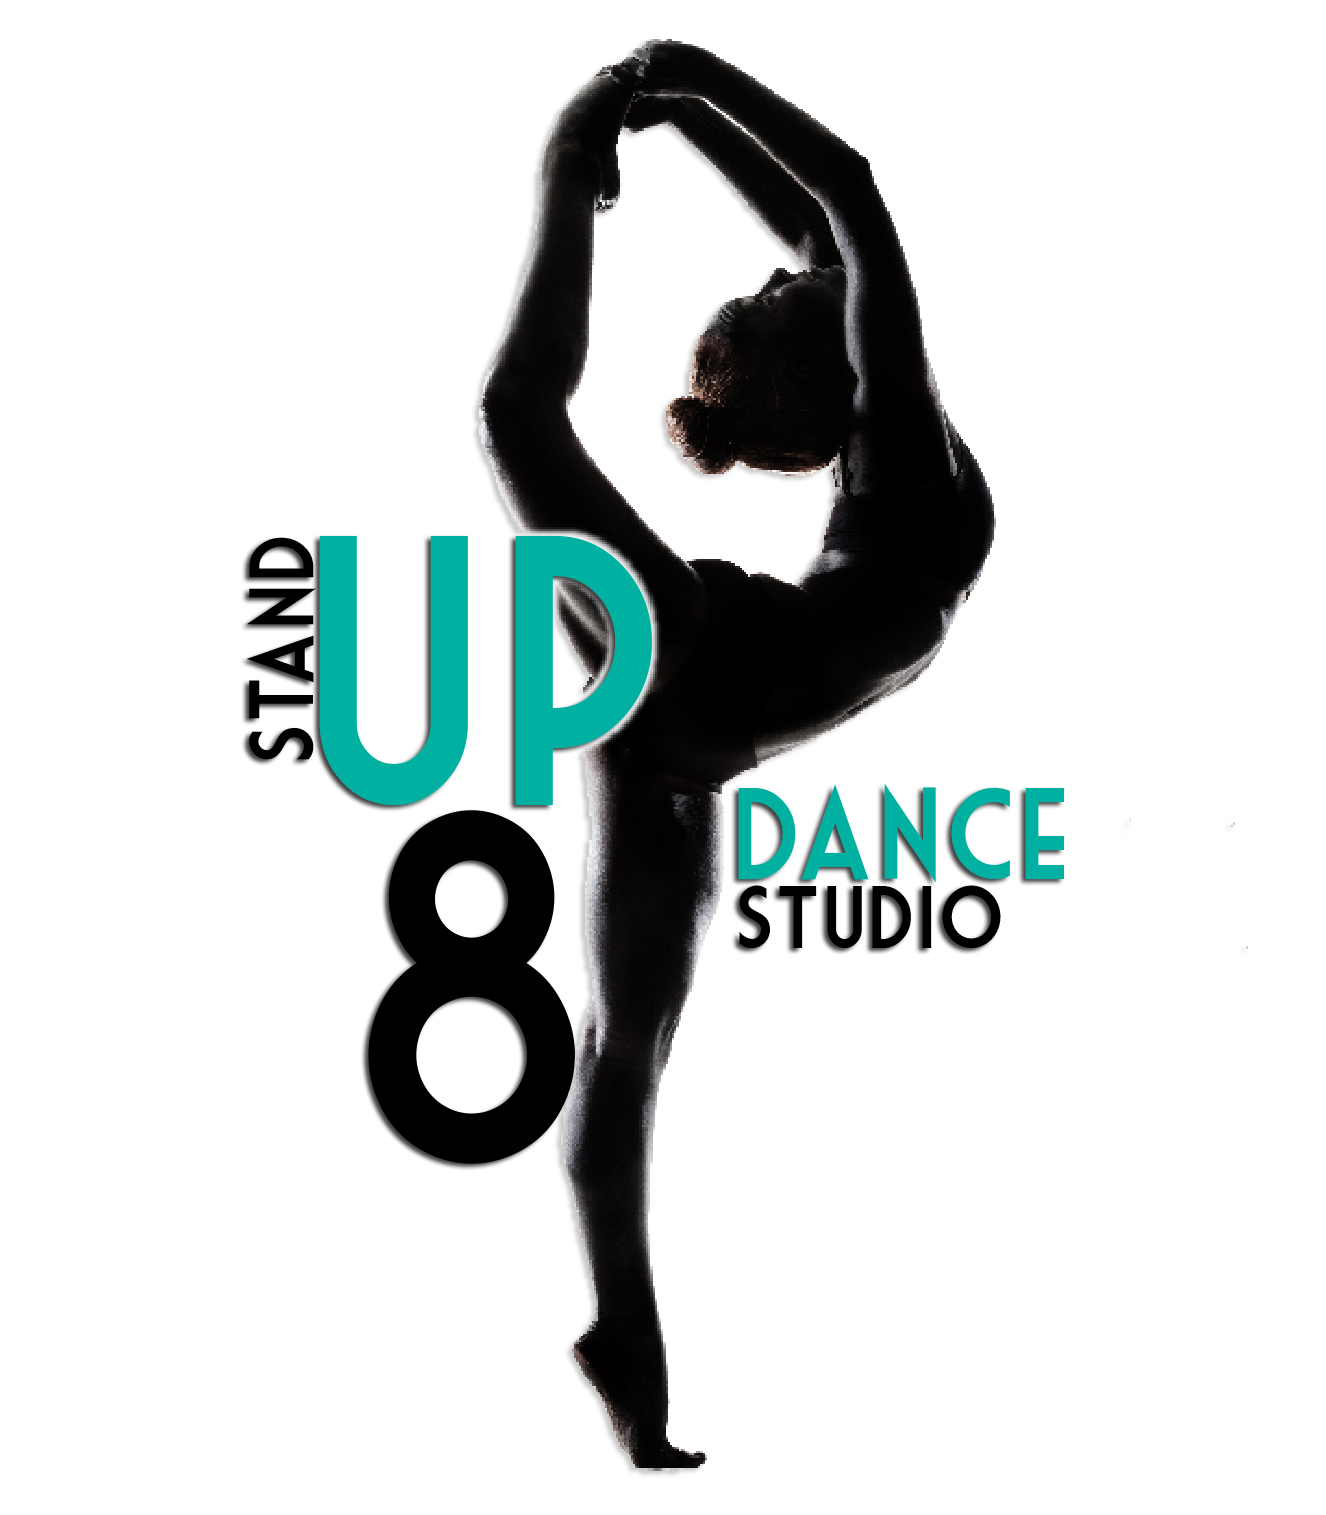 Stand Up 8 Dance Studio